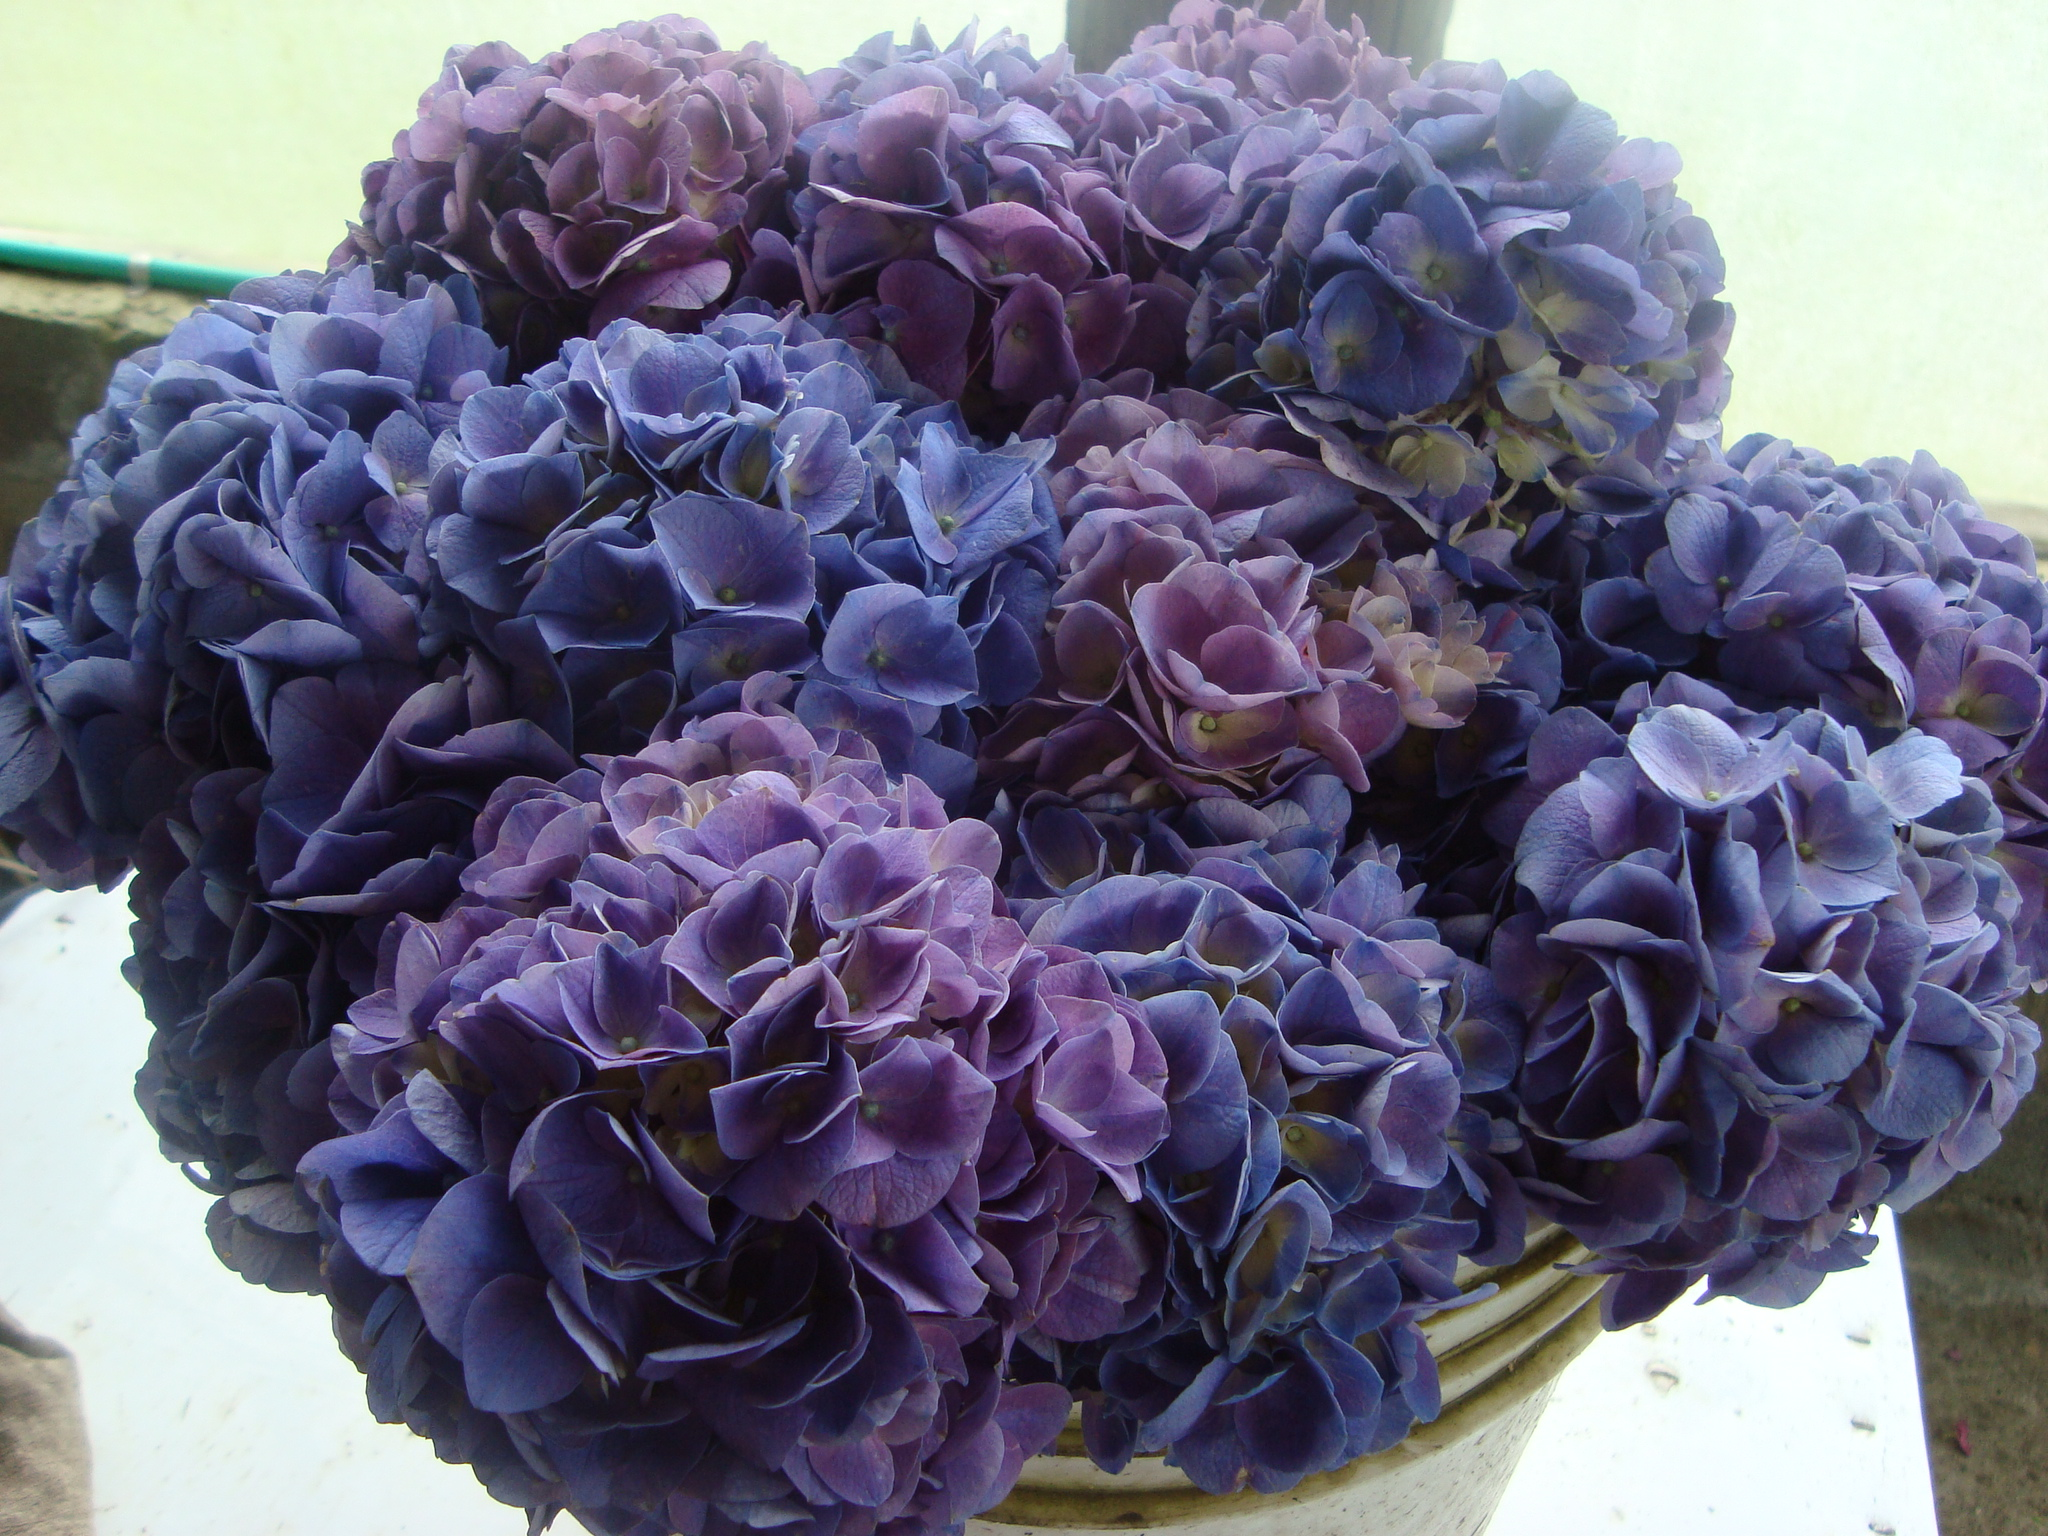 First come flowers how to white and blue hydrangeas are the colors you traditionally see in flower shops but if you look in gardens youll see pinks dhlflorist Gallery